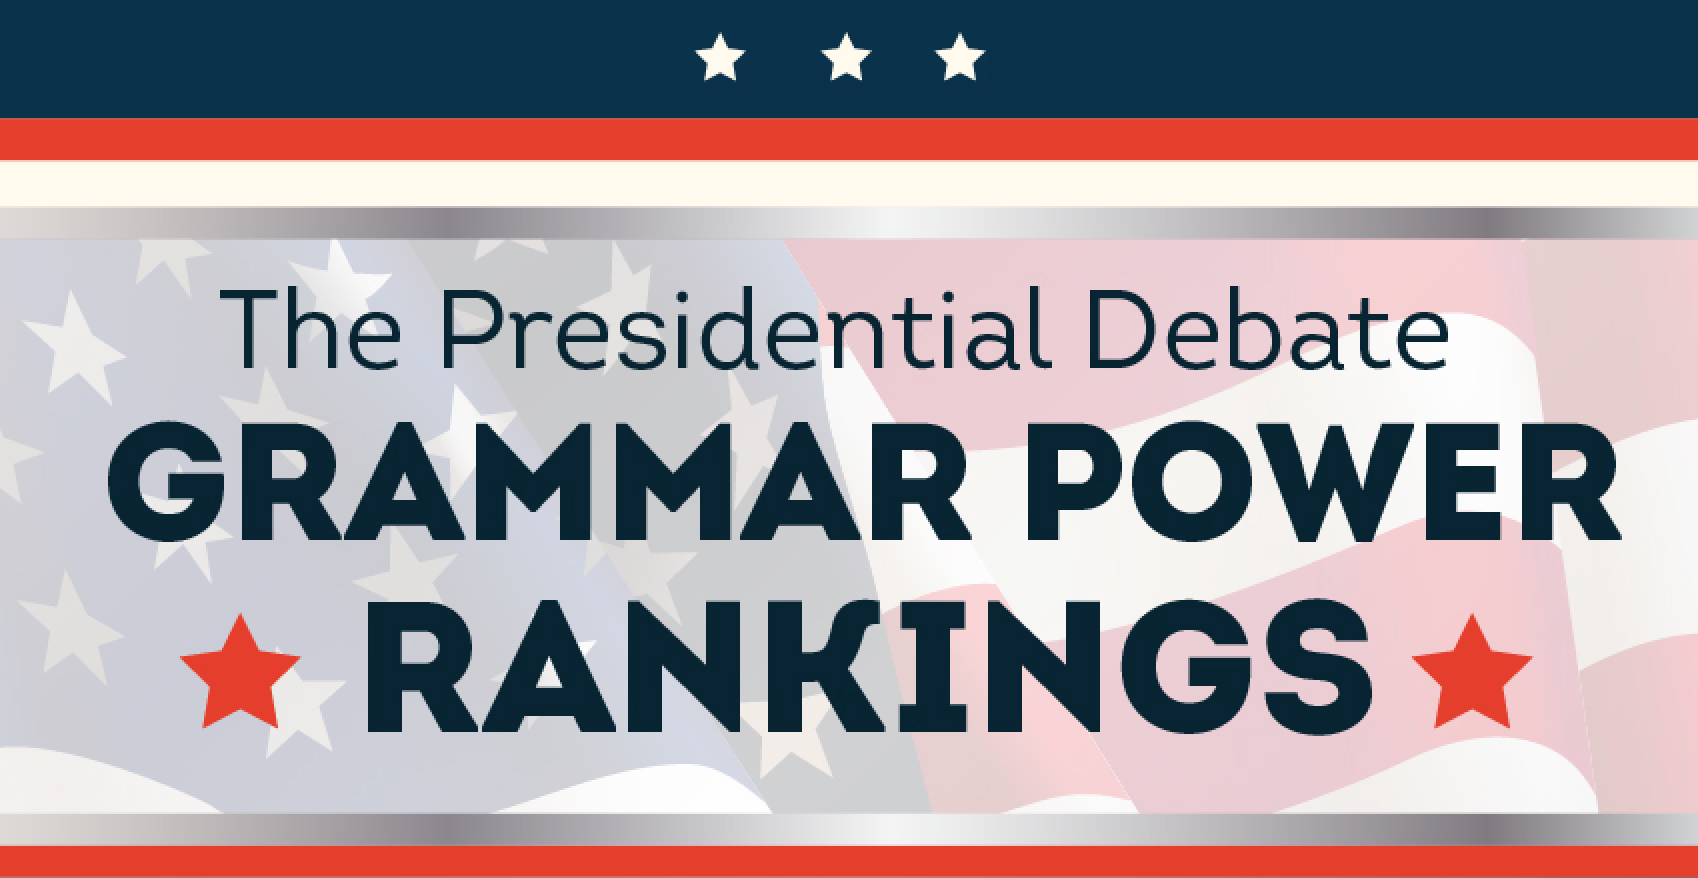 Presidential Debate Grammar Power Rankings